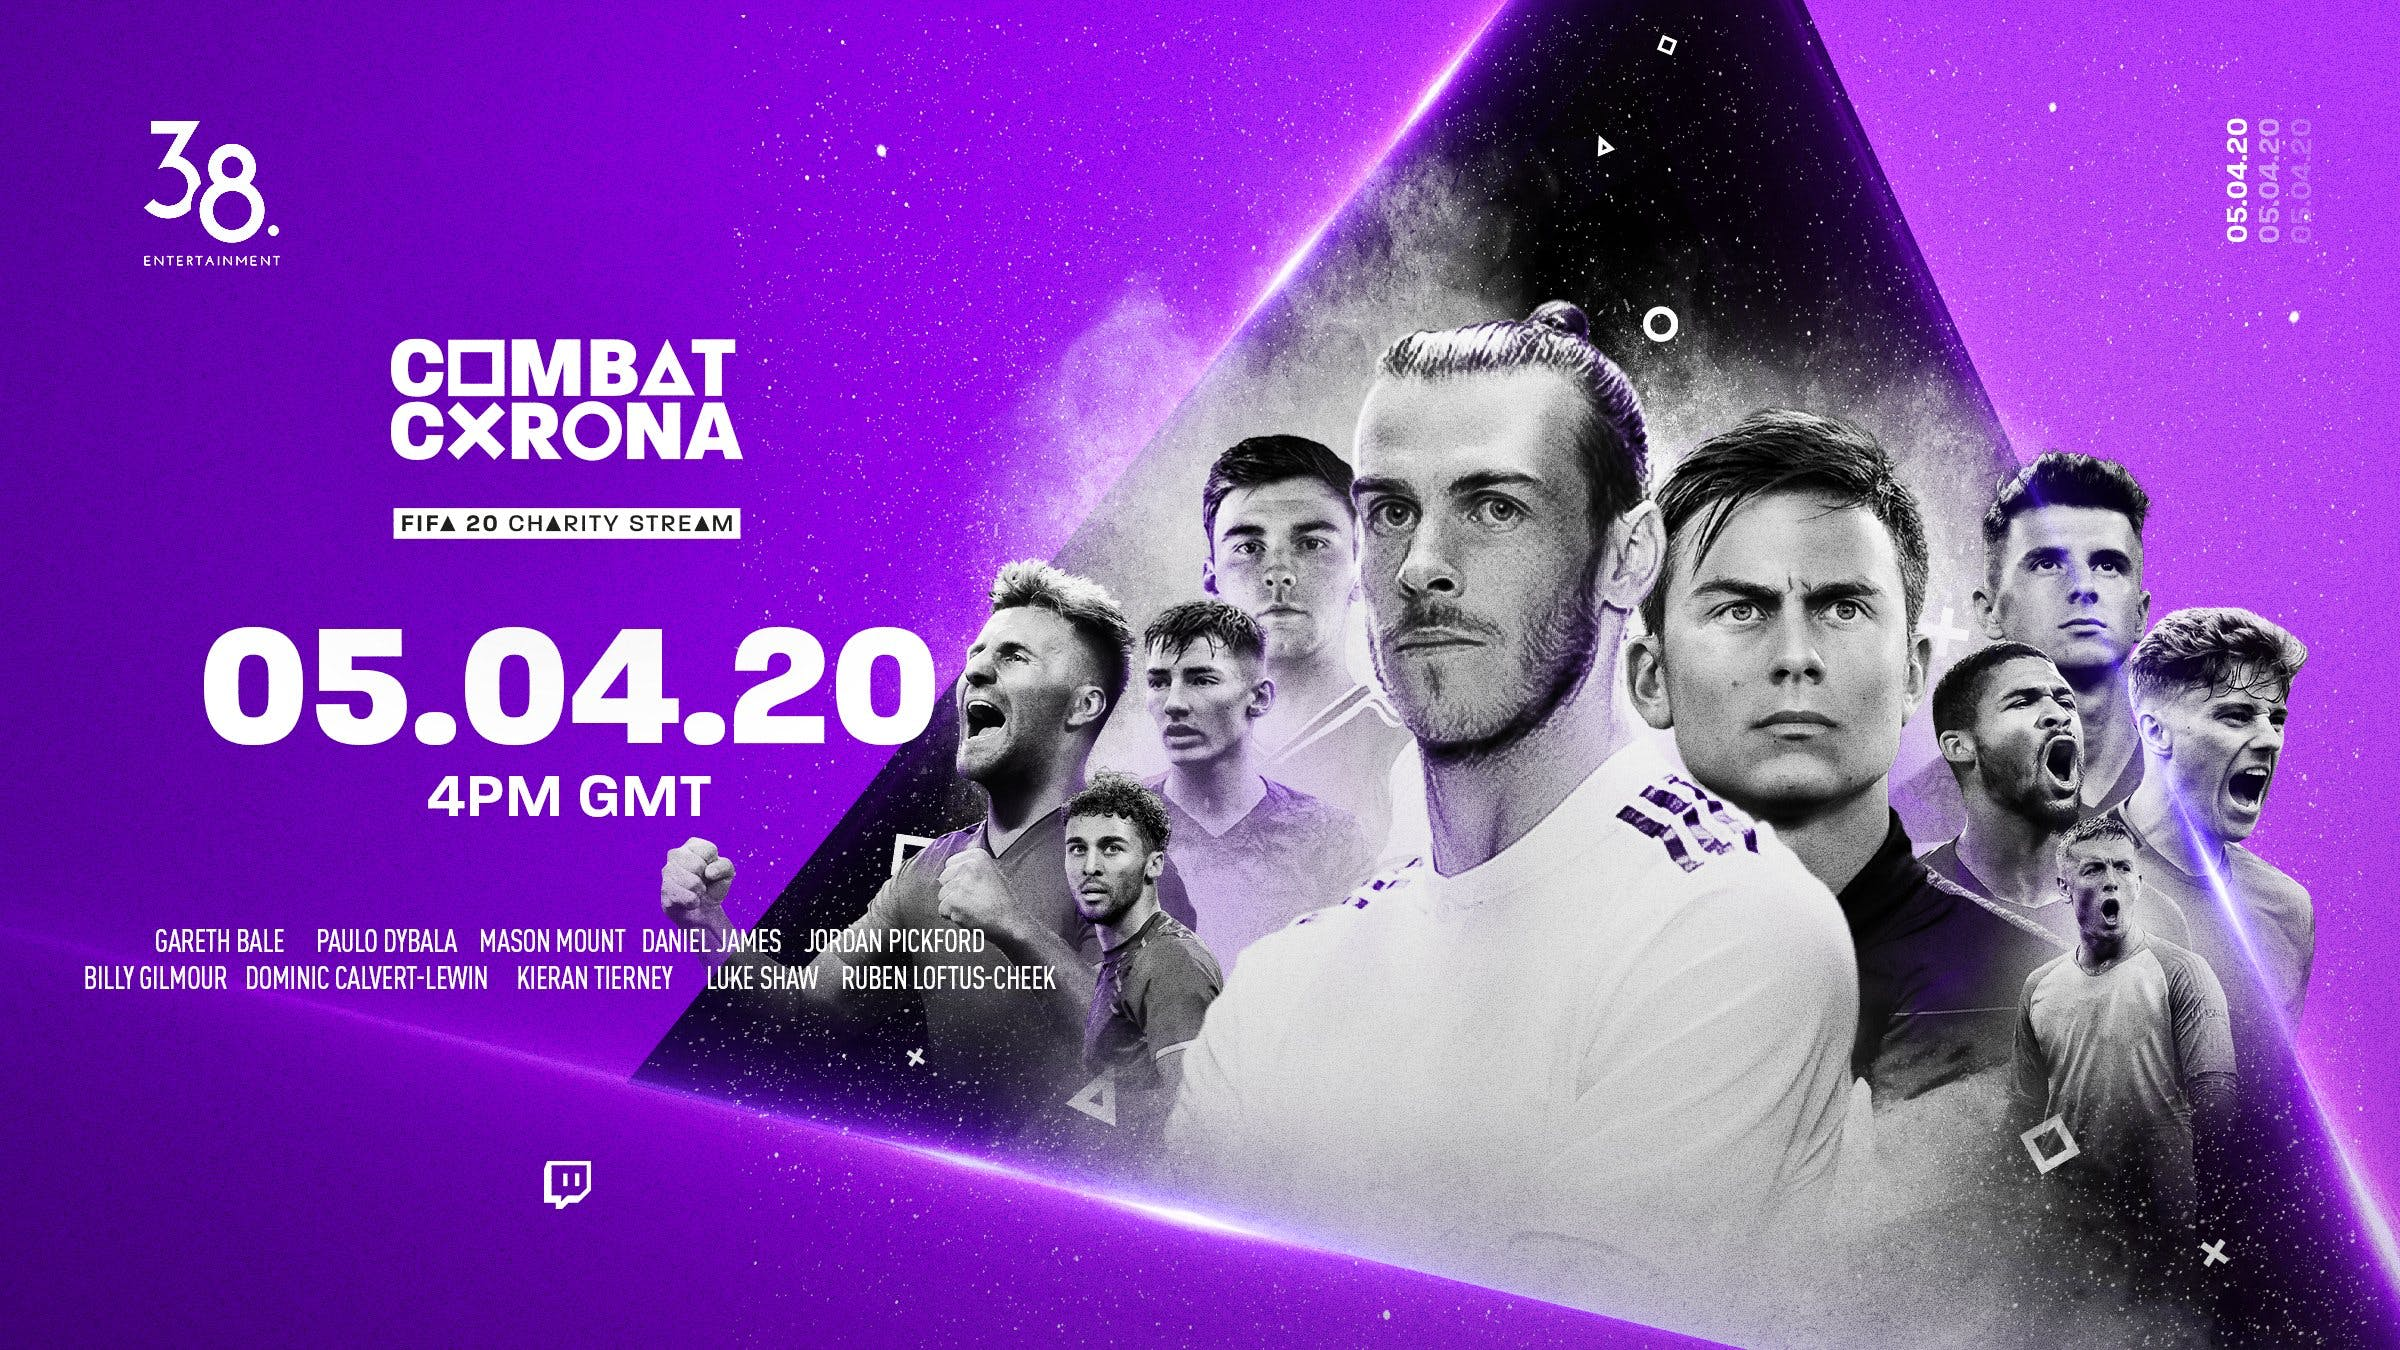 Football stars from around the world will battle it out on Twitch live on Sunday